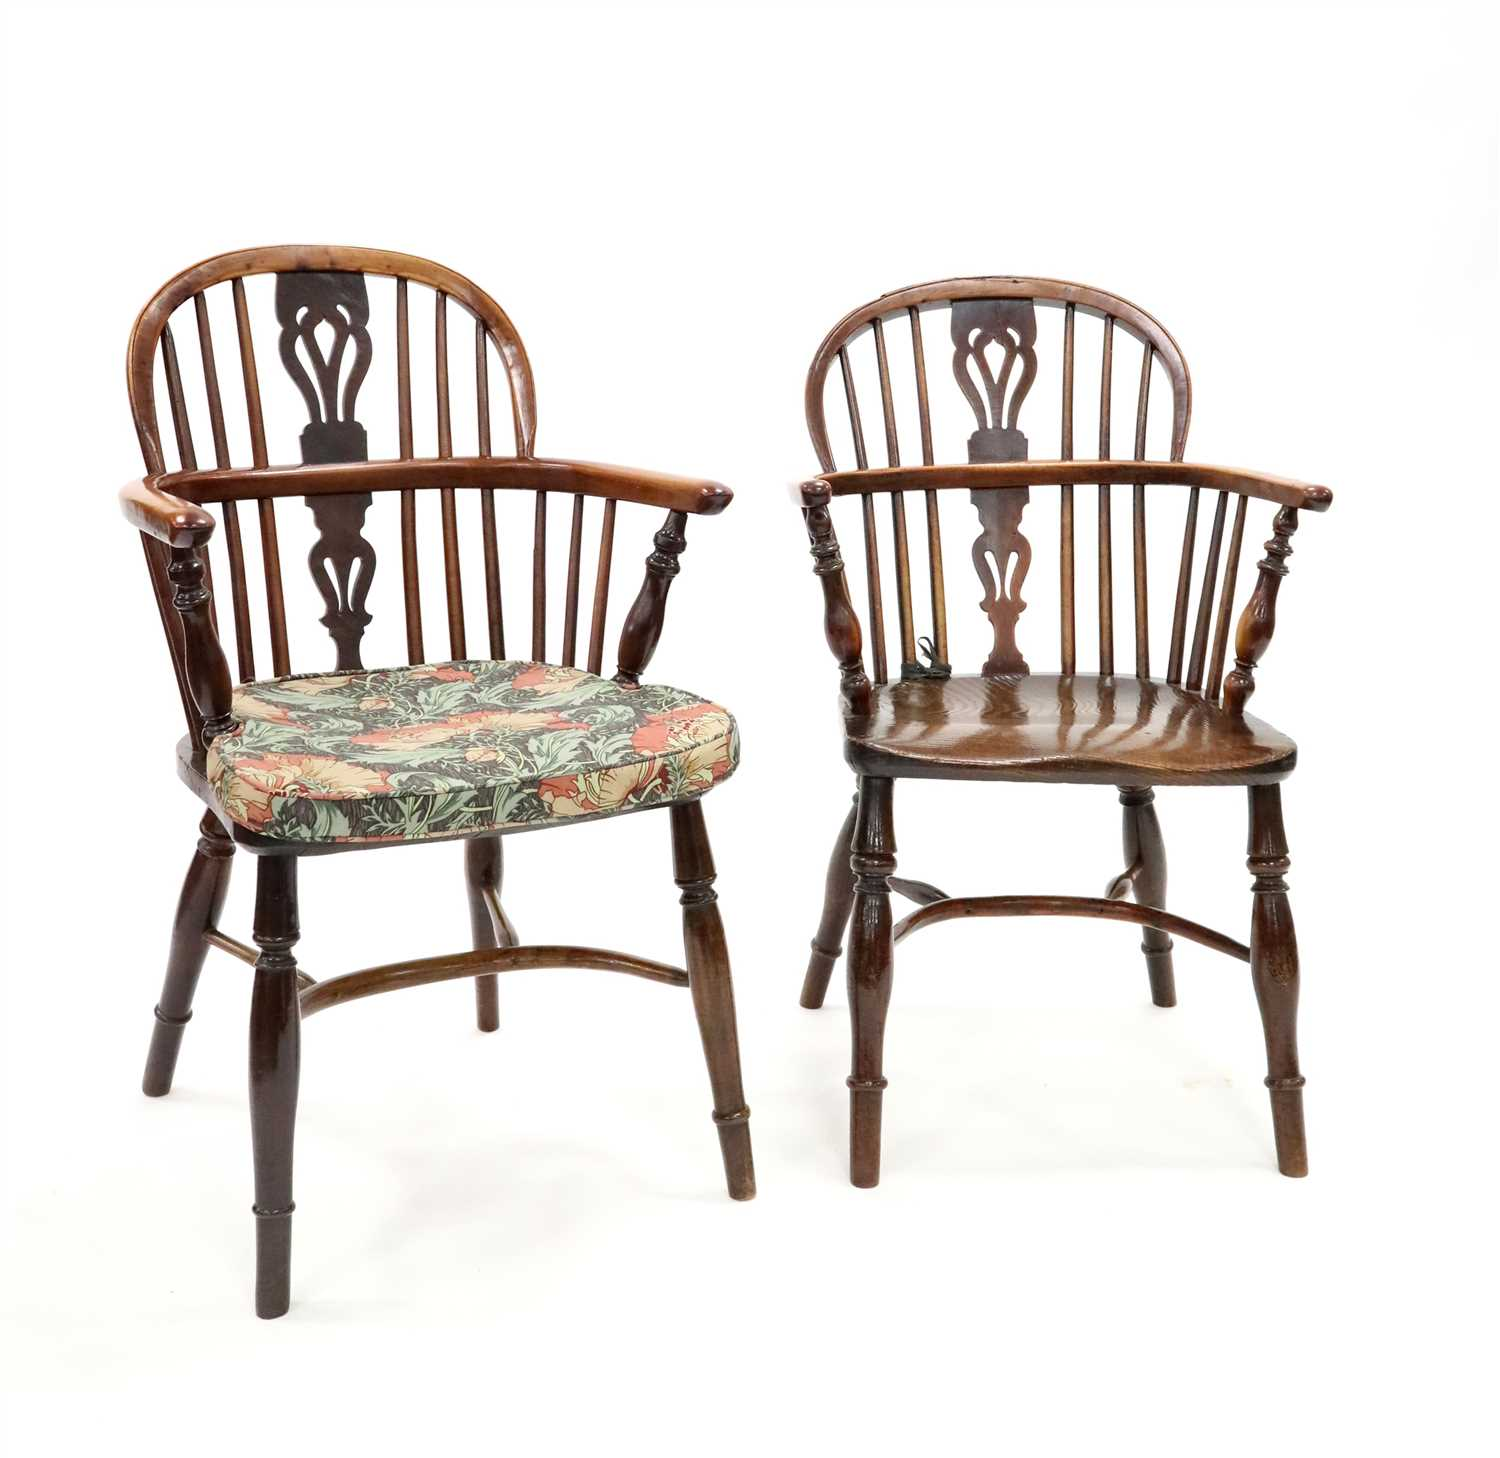 Lot 247-A closely associated set of four 18th century Windsor stick back kitchen chairs